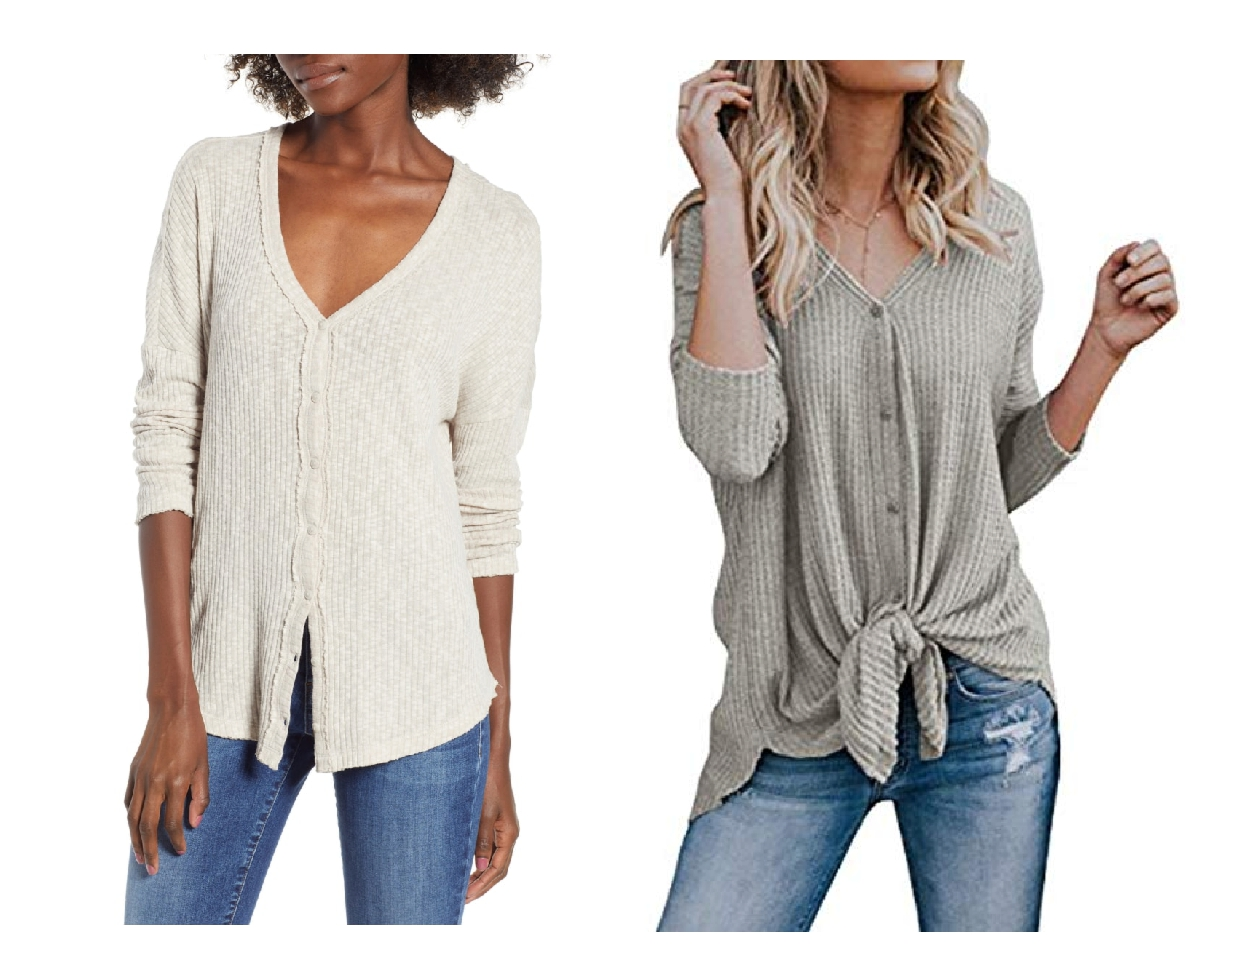 nordstrom anniversary sale dupes, button thermal top